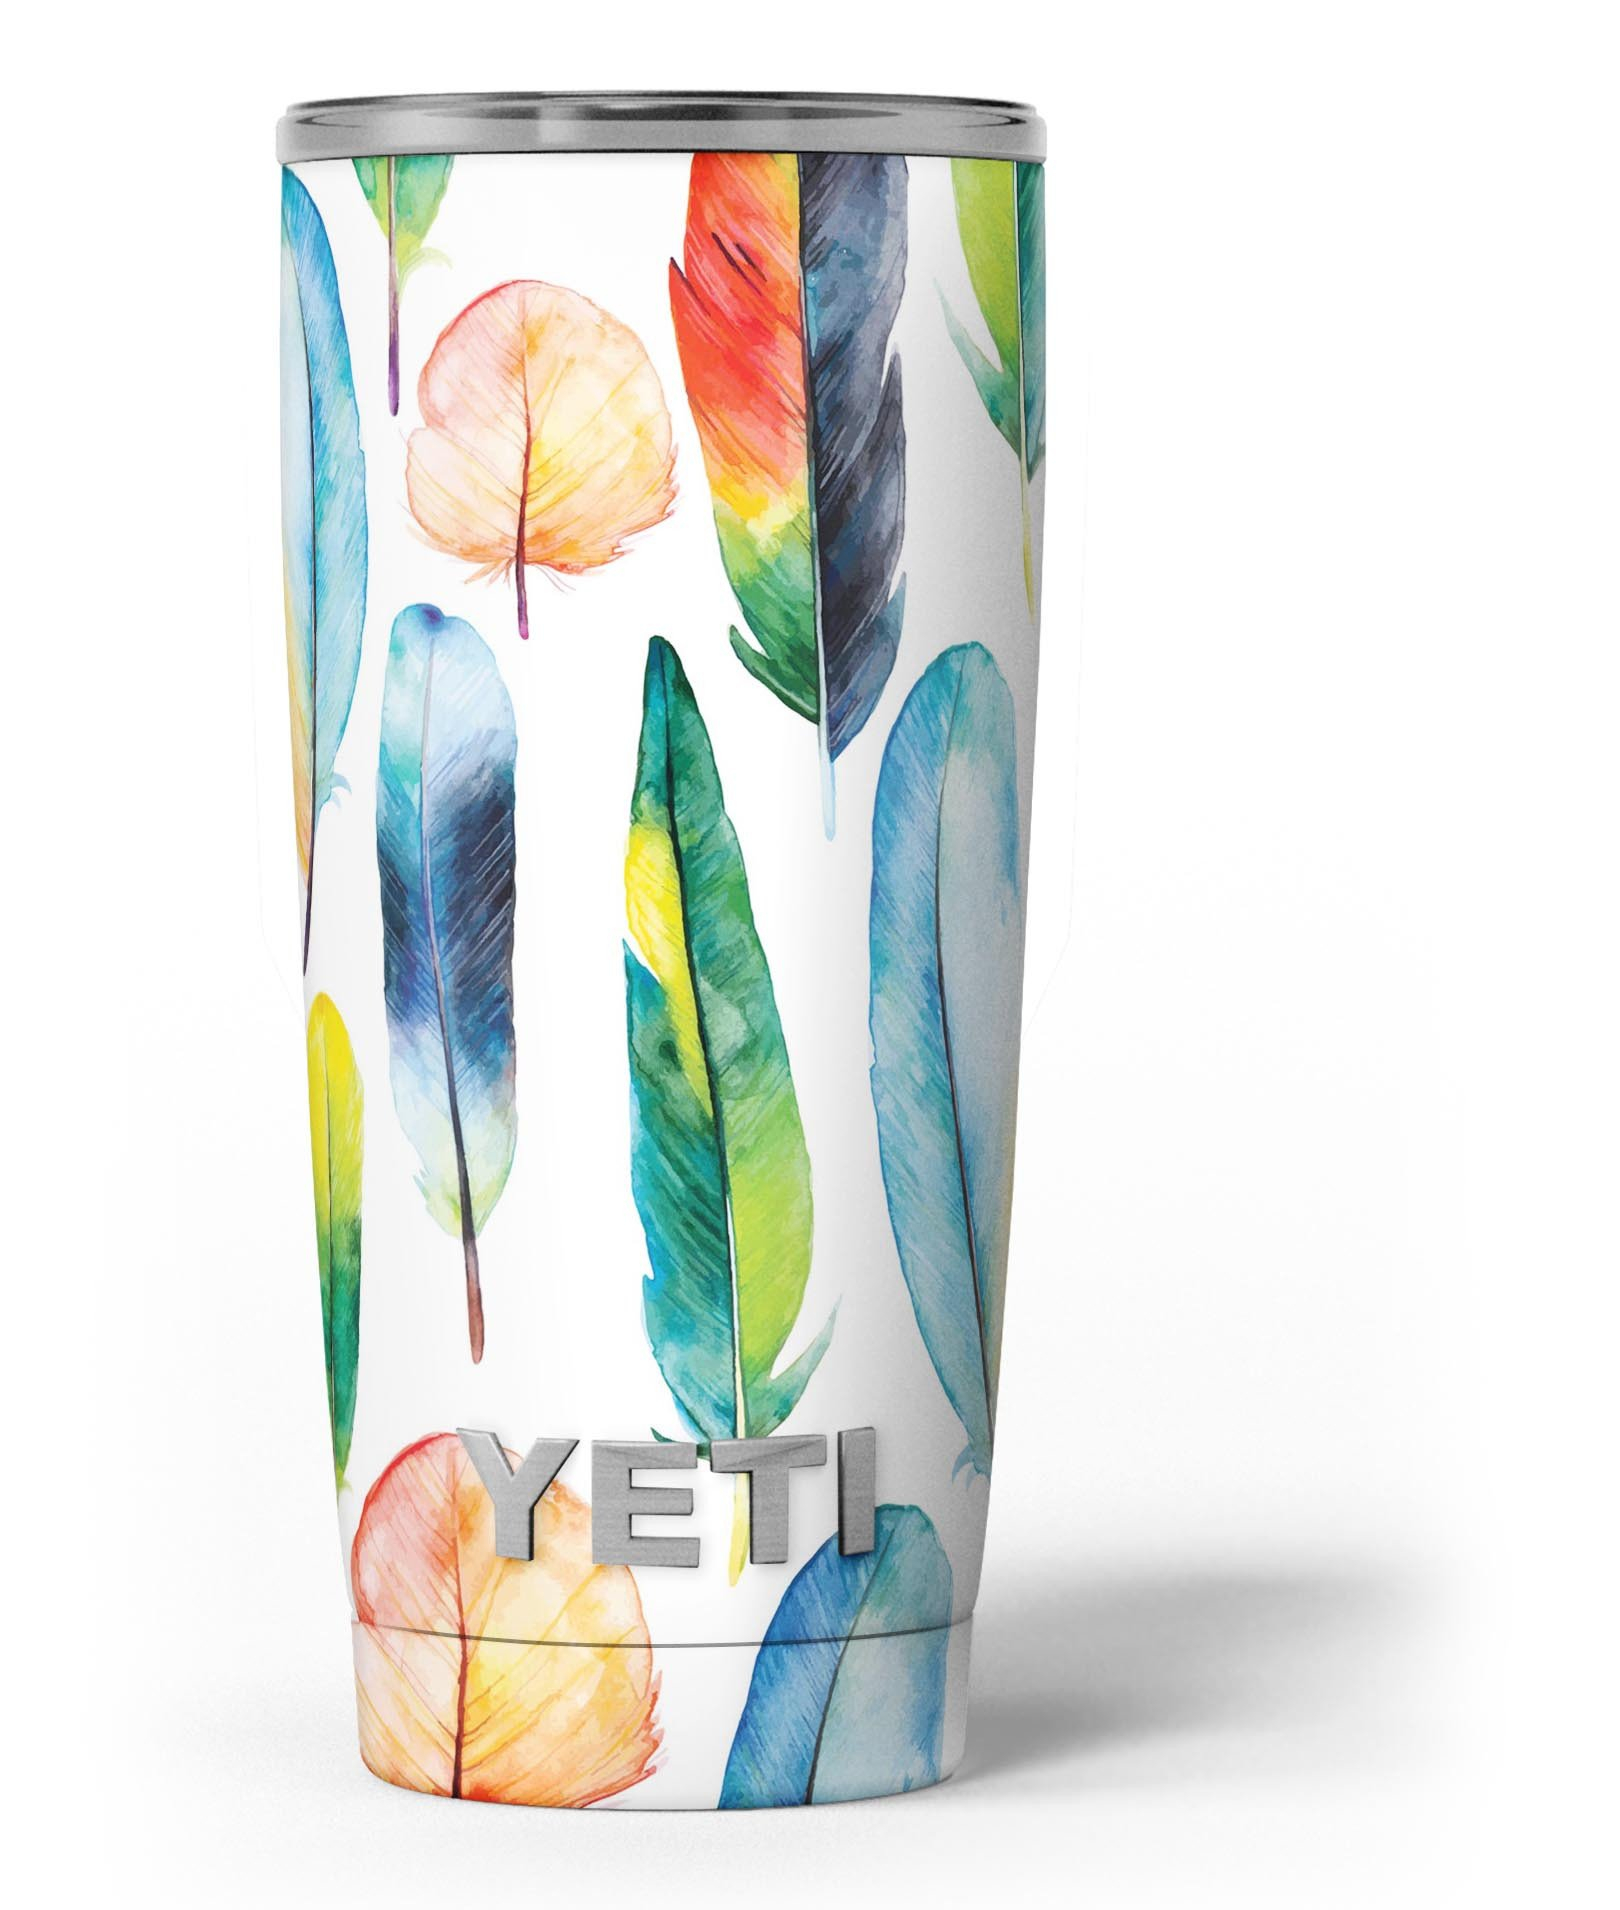 Image of Bright Water Color Painted Feather - Skin Decal Vinyl Wrap Kit compatible with the Yeti Rambler Cooler Tumbler Cups